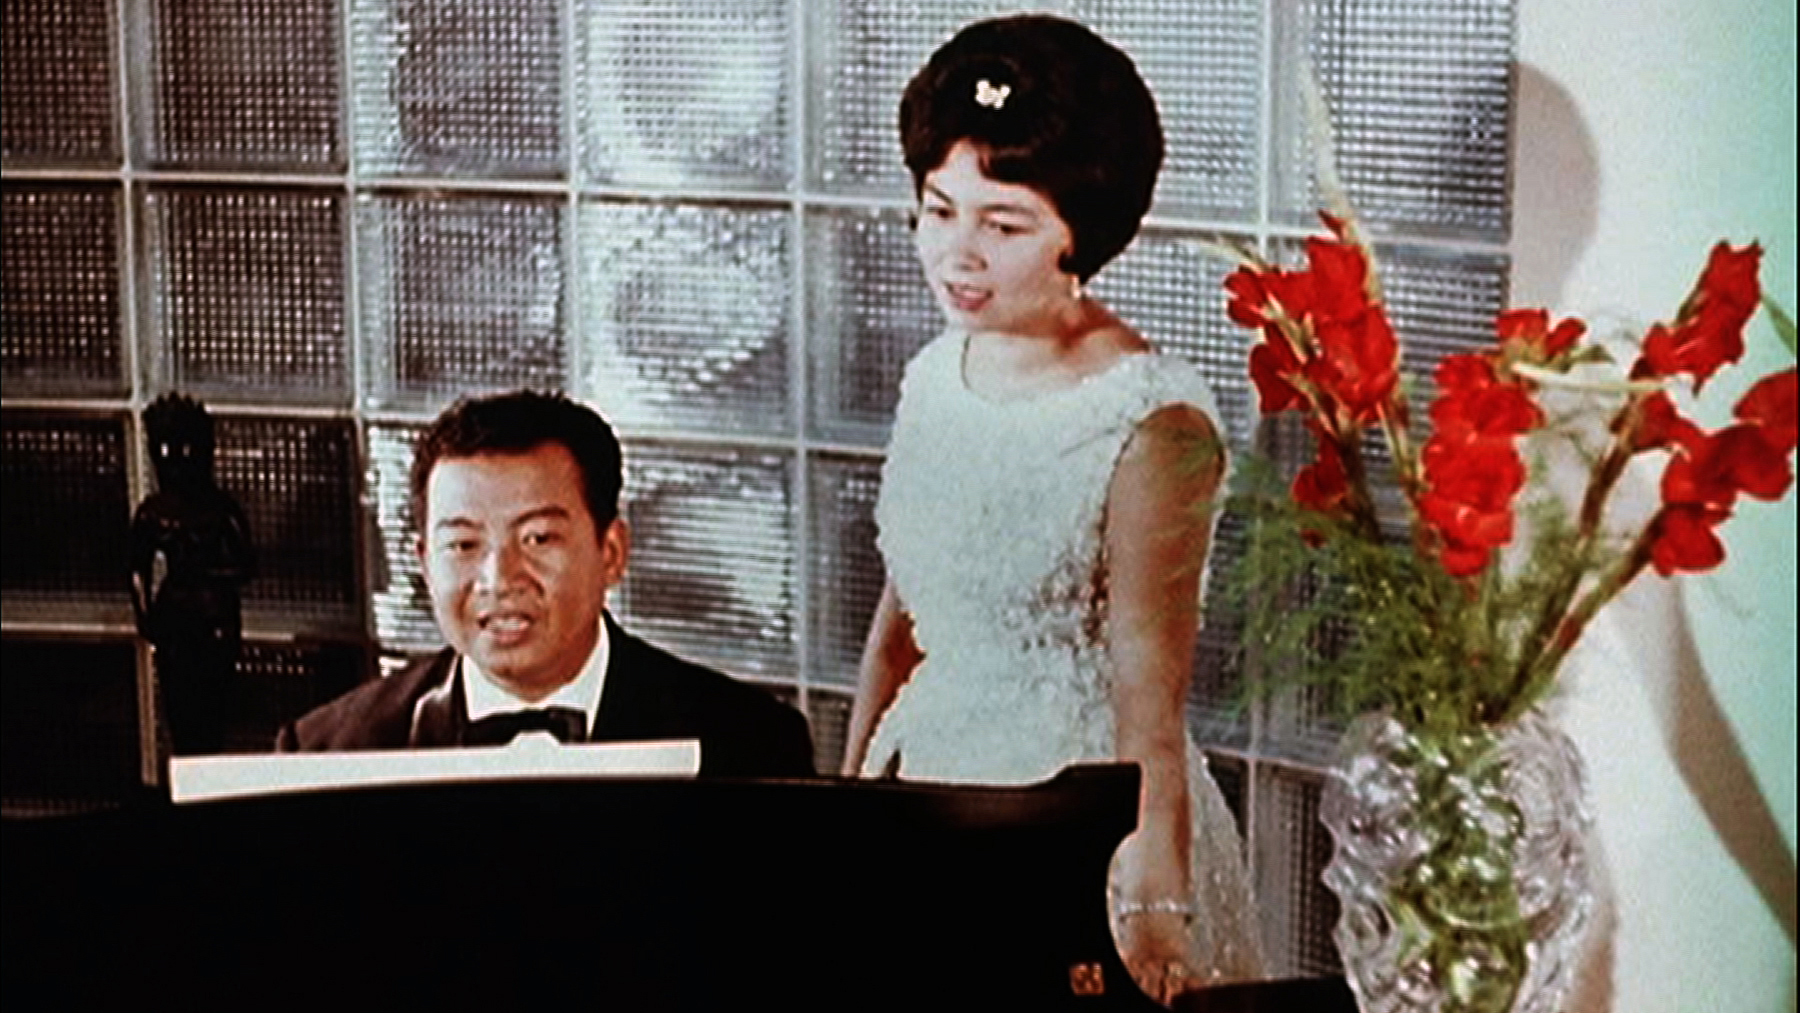 His Royal Majesty King Norodom Sihanouk and Her Royal Highness Norodom Monineath (film still courtesy of His Royal Majesty King Norodom Sihanouk)